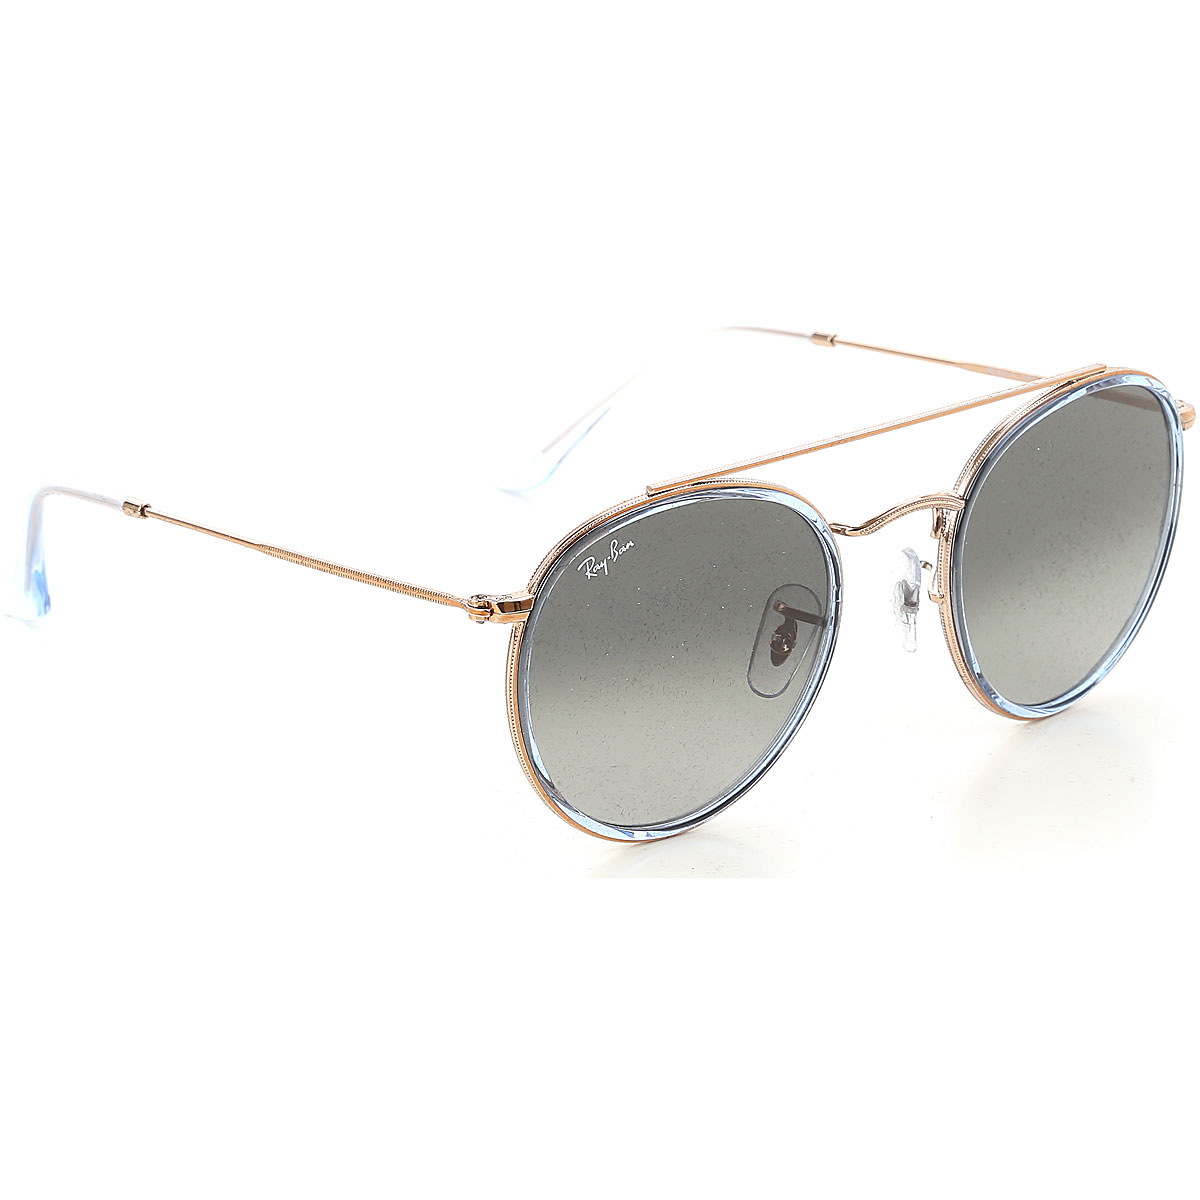 Ray Ban Sunglasses On Sale, Rose Gold, 2019